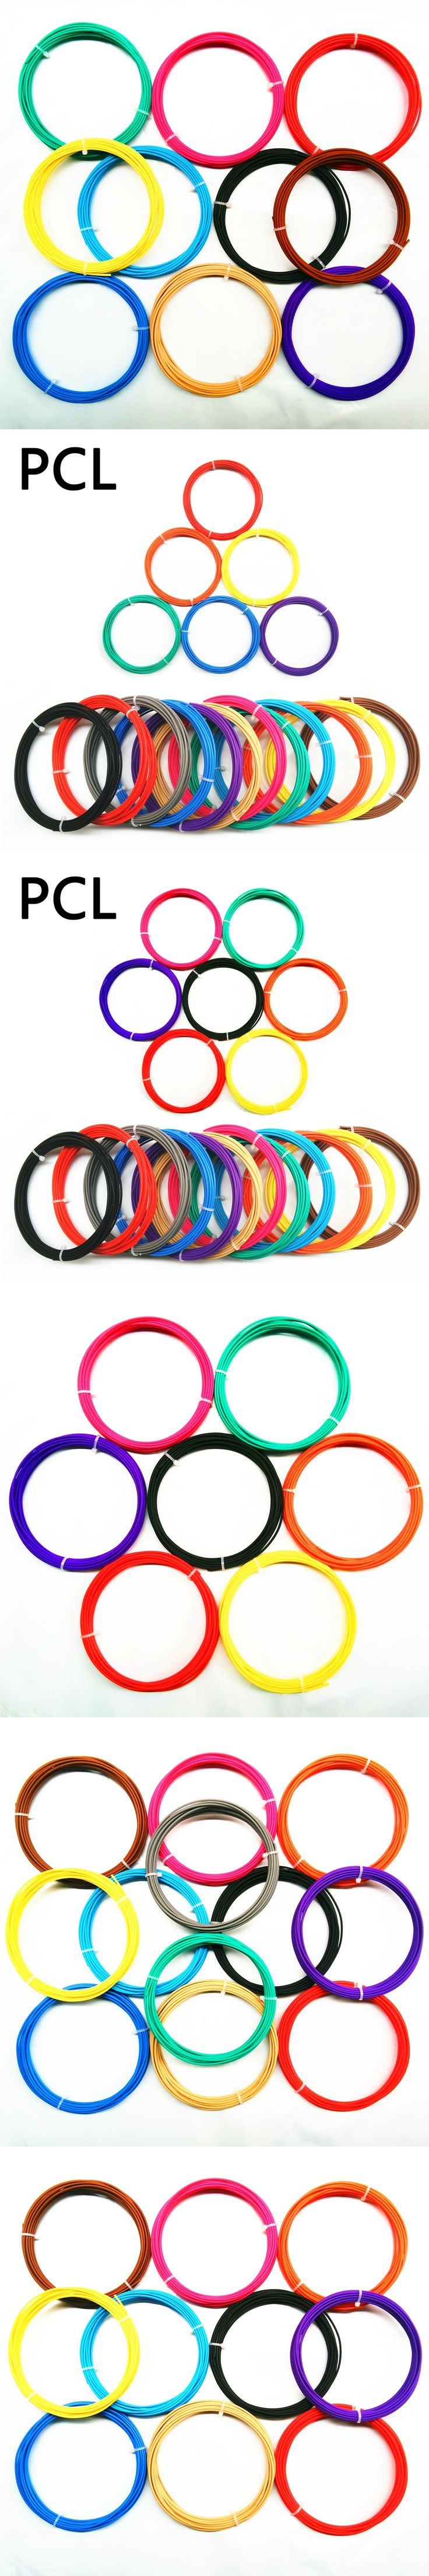 Low Temperature 3D Printing Materials 3D Printing Pen 1.75mm PCL Filament Environmentally Non-toxic 20 colors Randomly delivery